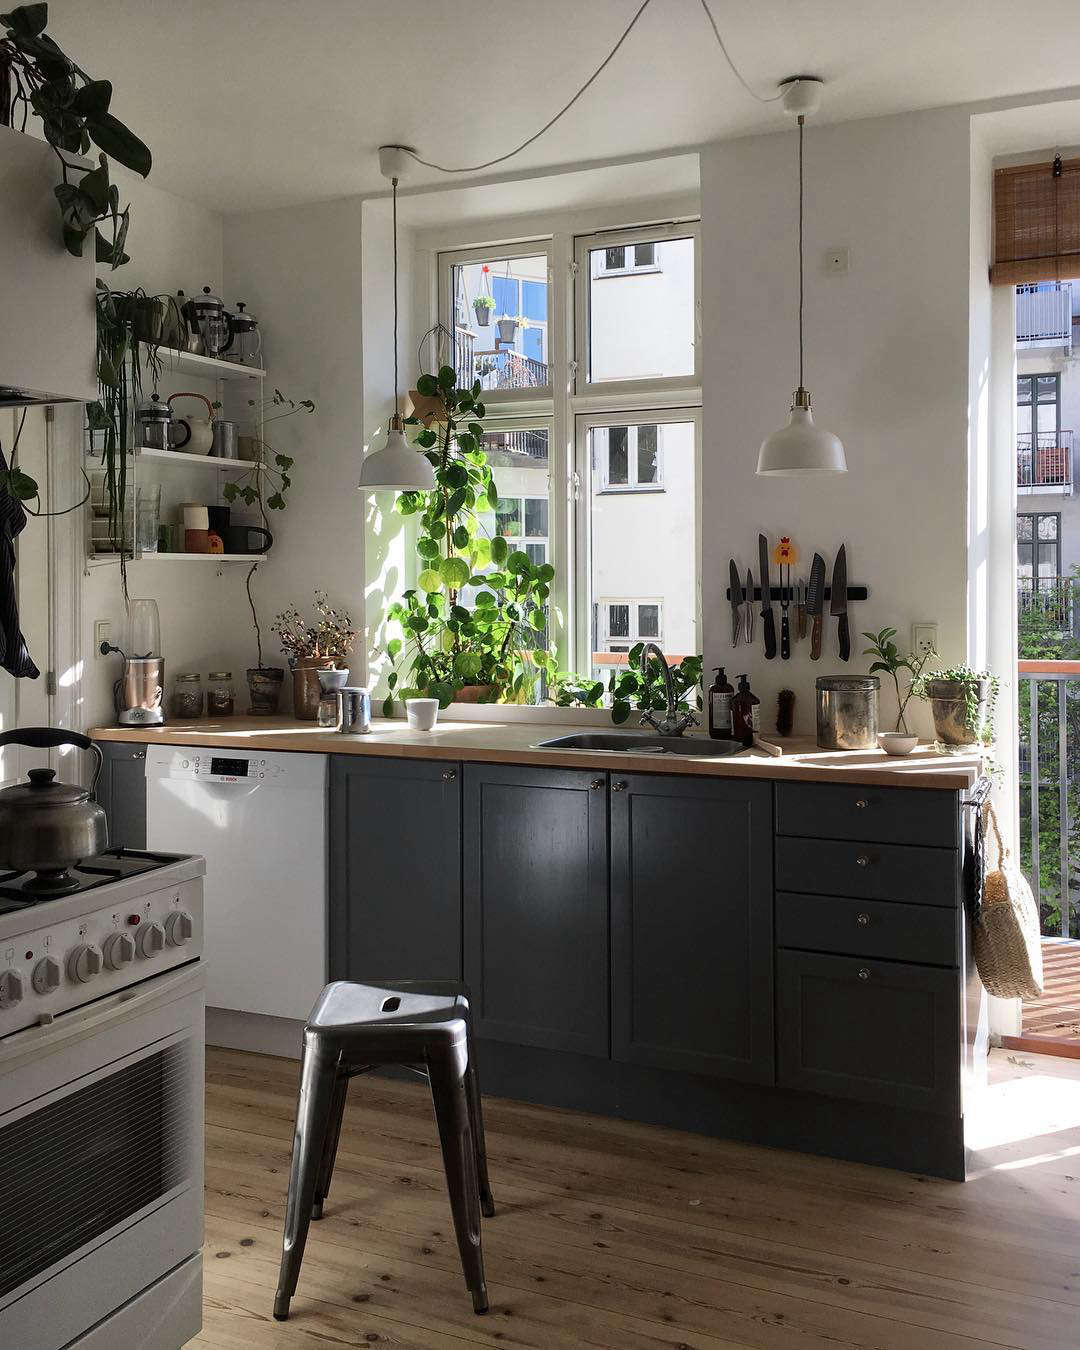 Kitchen of the Week: An Architect's Light-Filled, DIY Copenhagen Kitchen, Ikea Hack Included - Remodelista